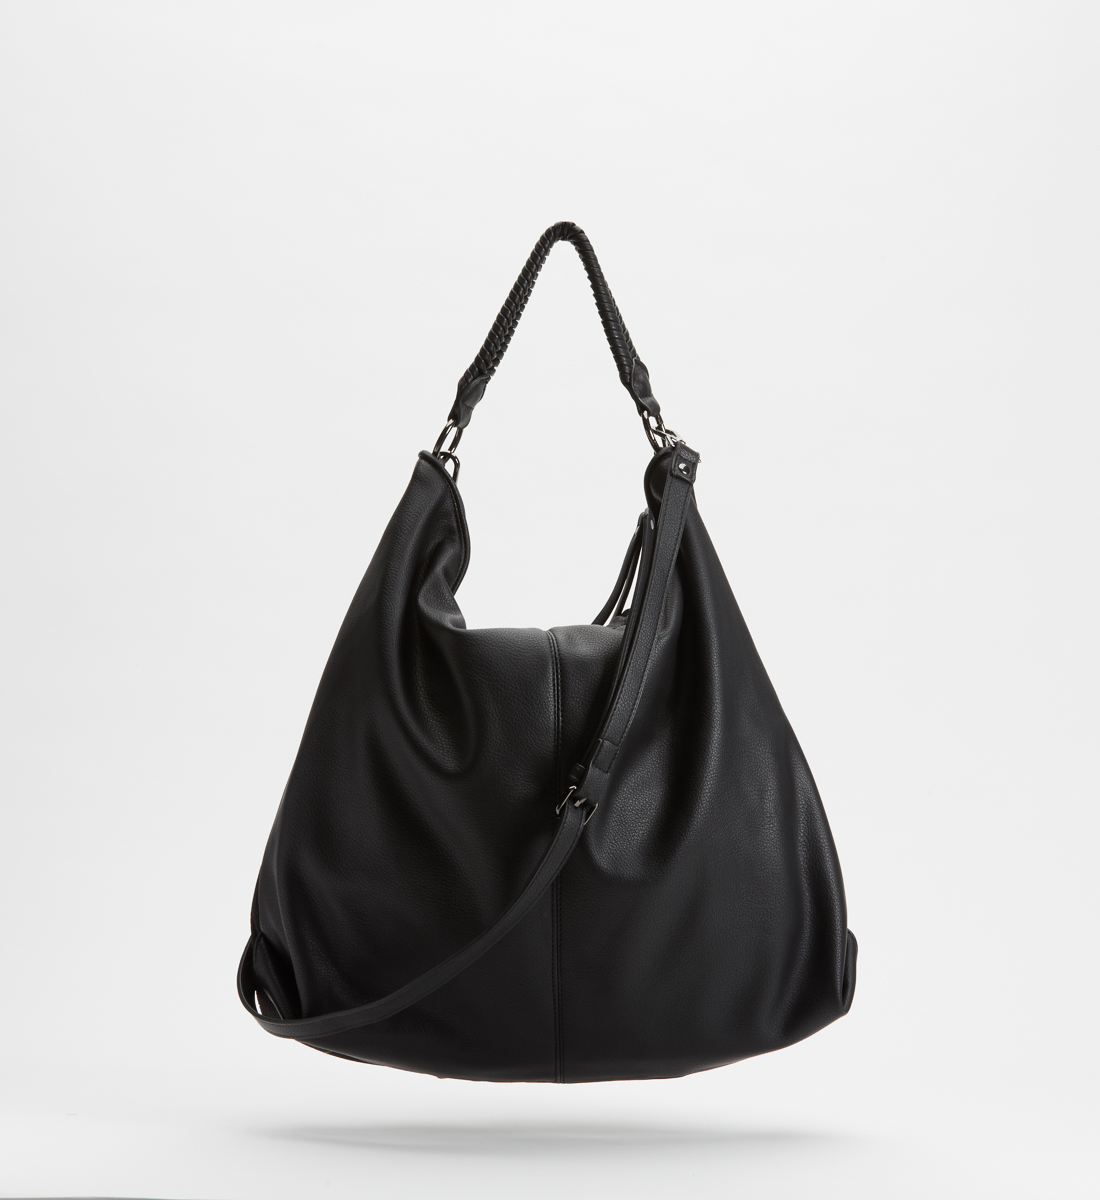 Mixed-Material Hobo Bag,Black Front